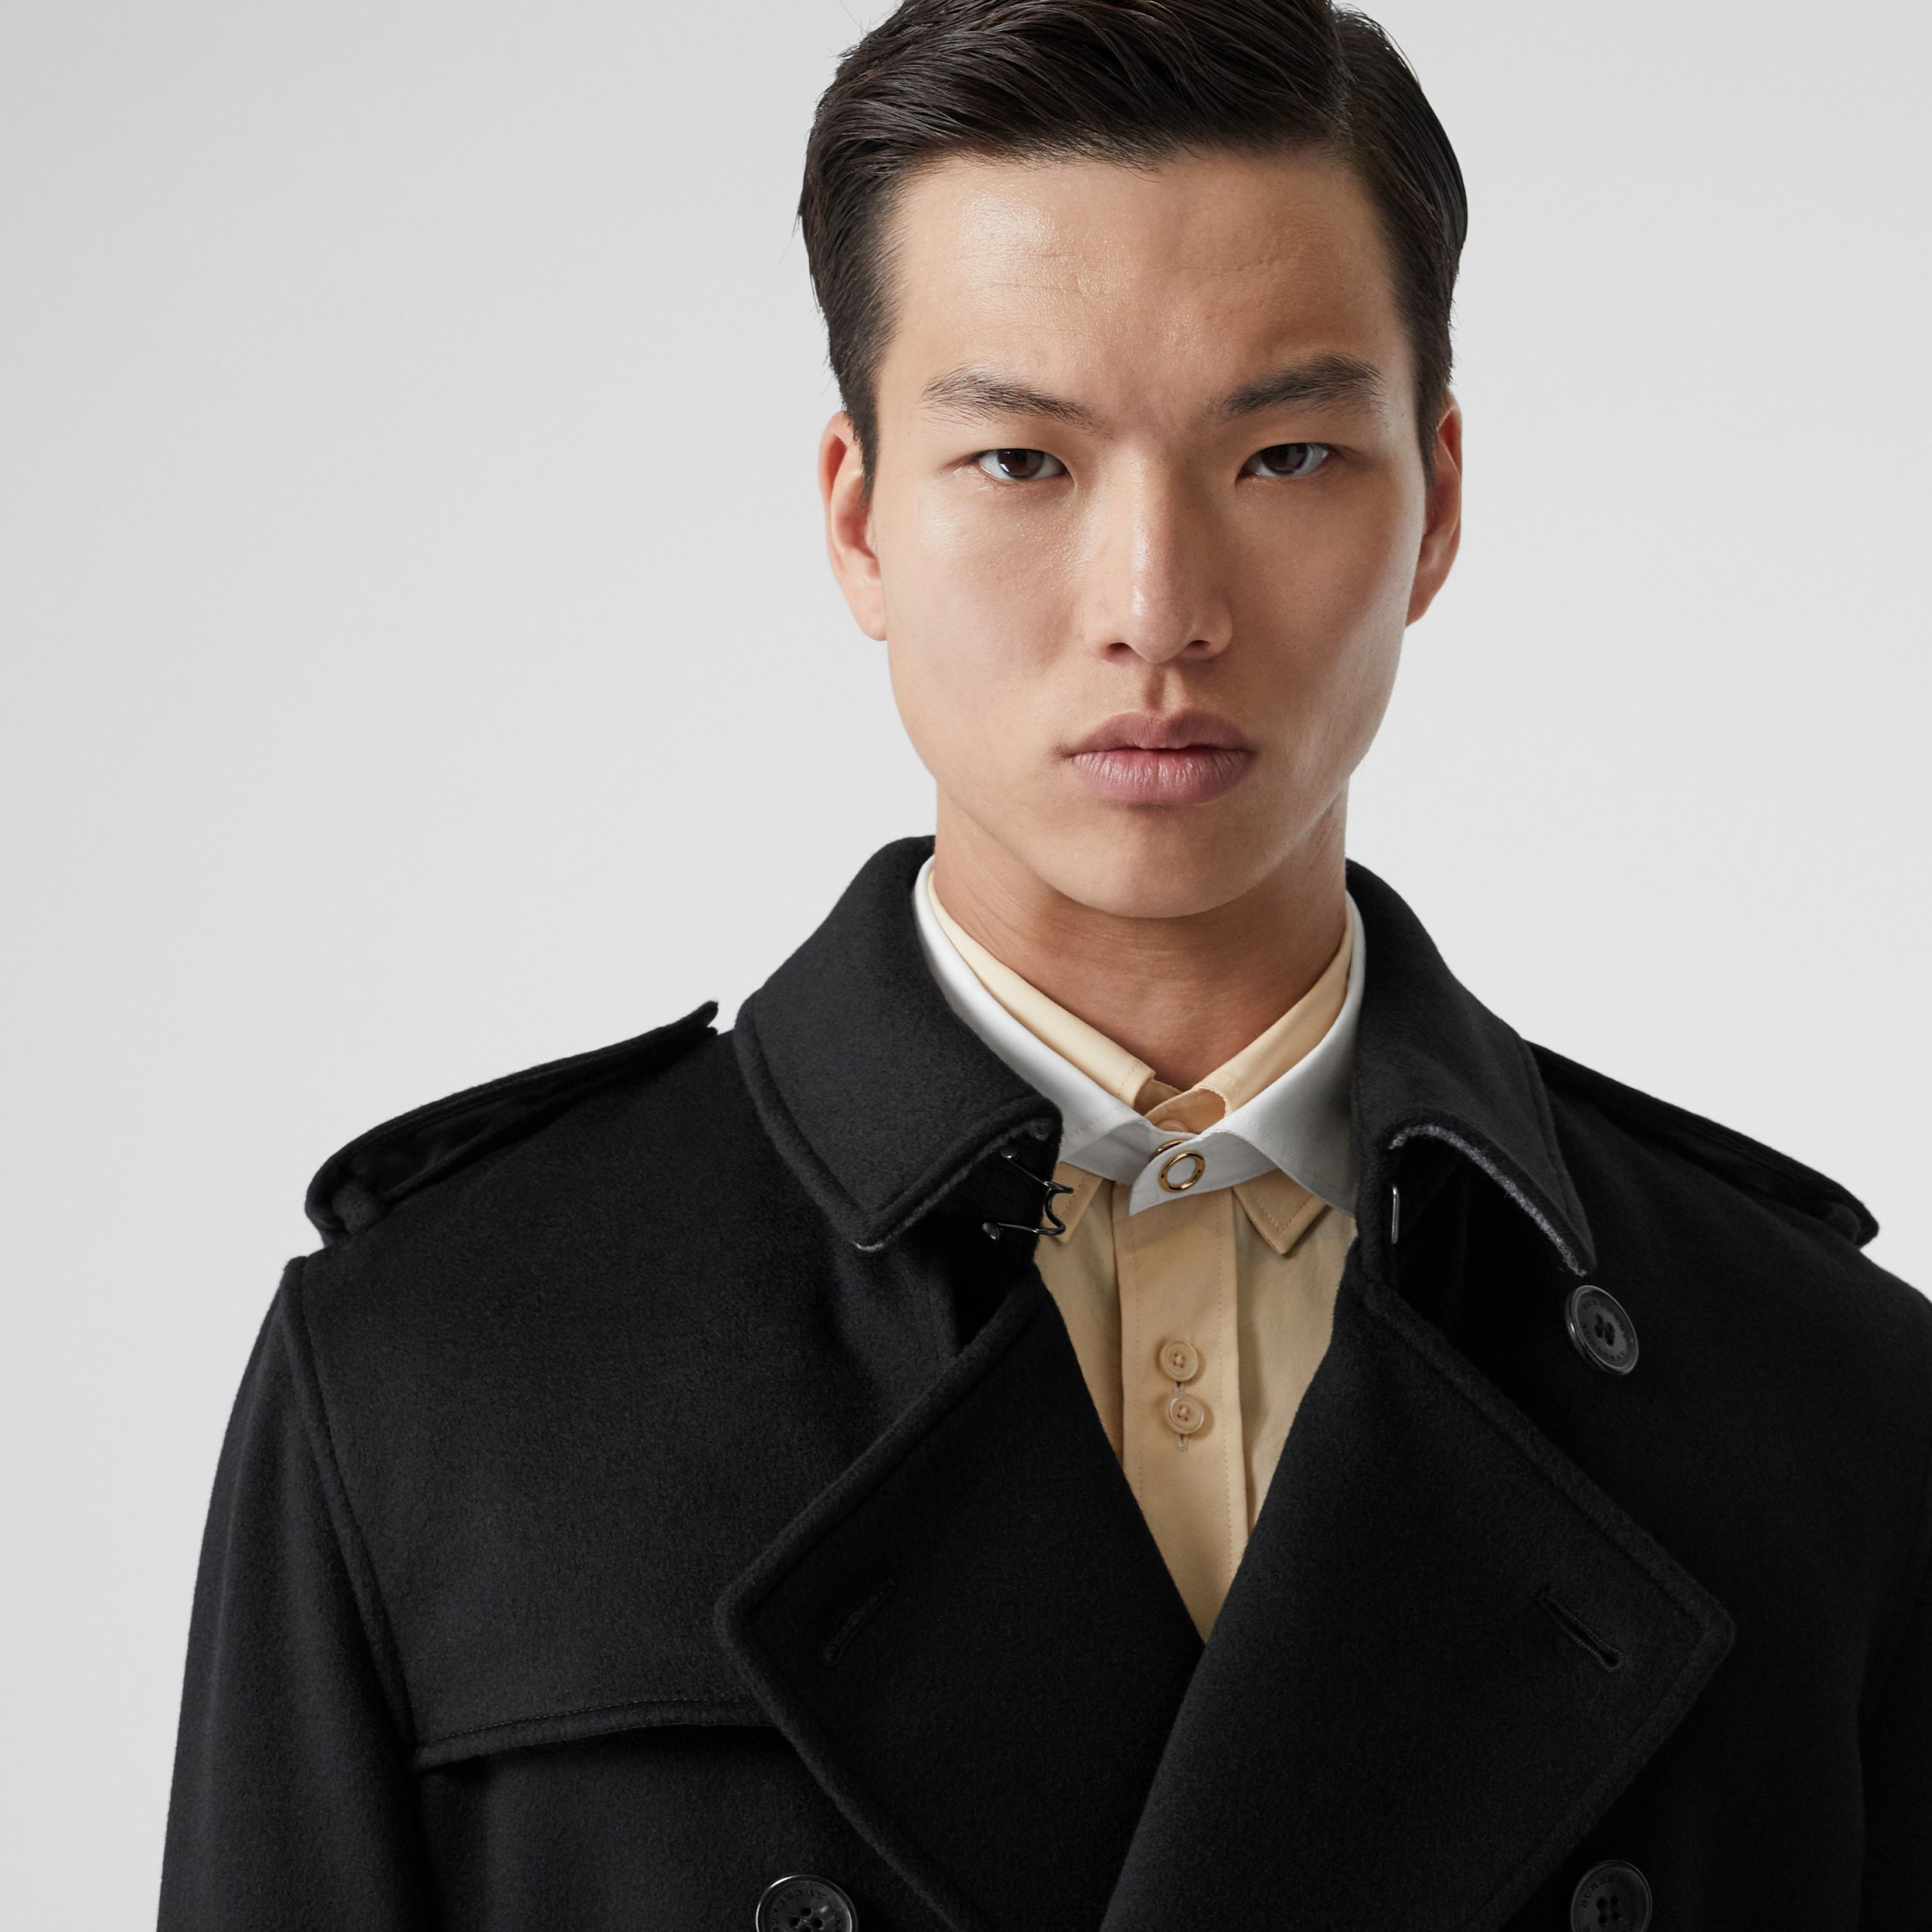 Cashmere Trench Coat in Black - Men | Burberry - 2